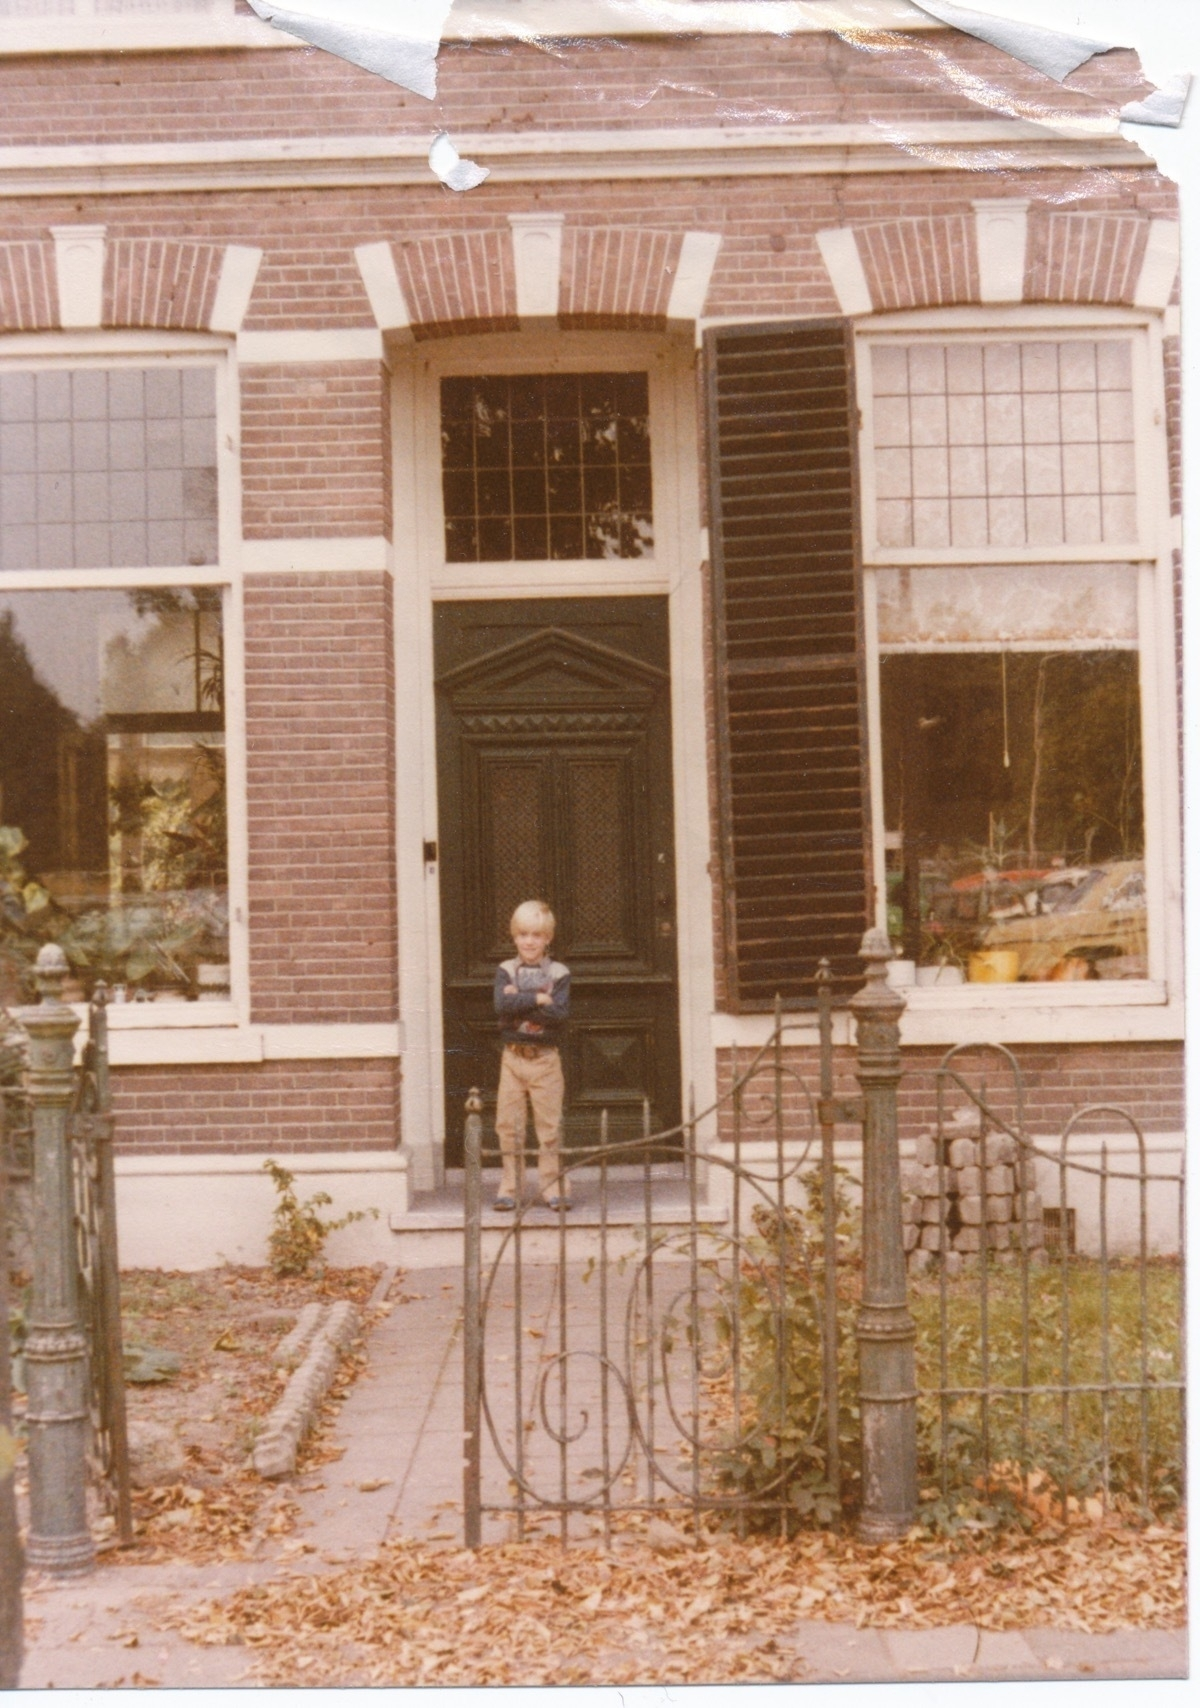 The front of a brick house in the Netherlands in 1977 with me, aged 7, standing at the front door